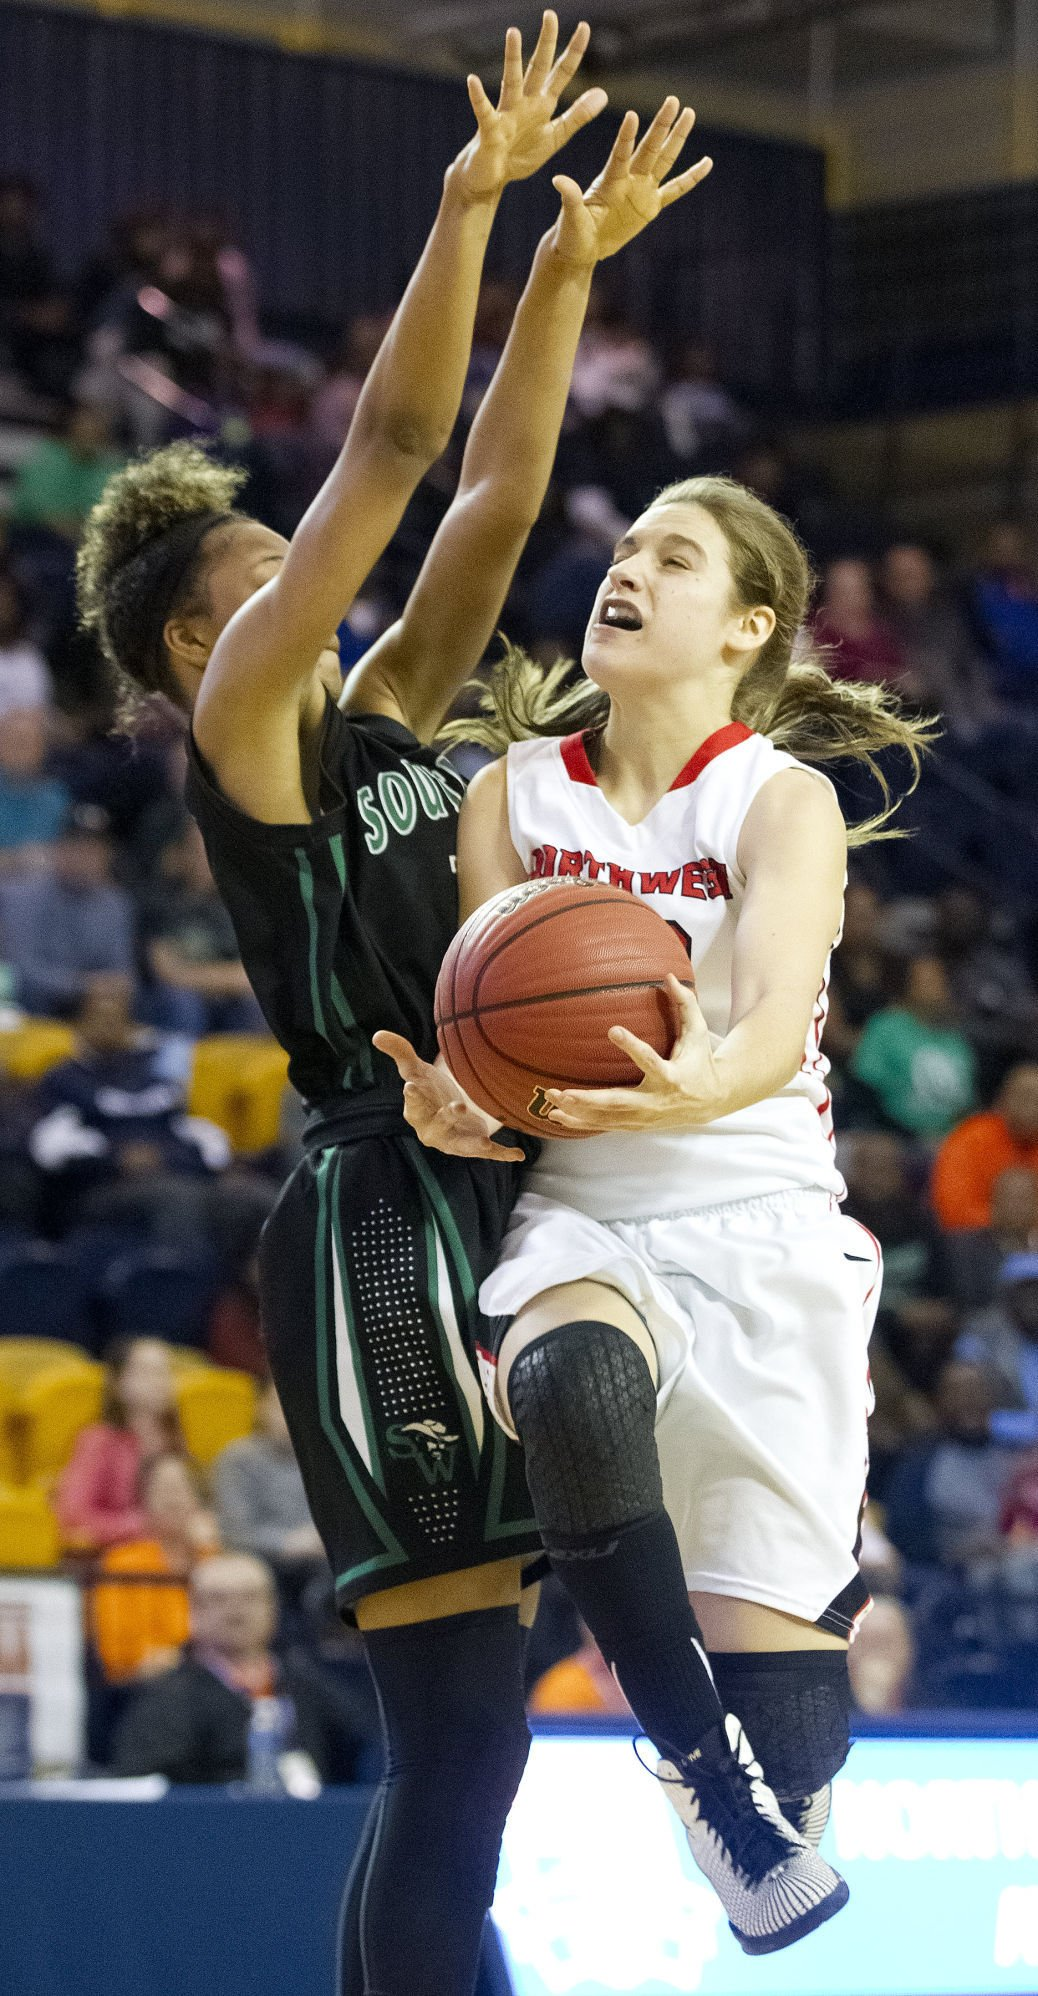 Northwest Guilford faces Southwest Guilford in NCHSAA 4-A Girls Championship Game